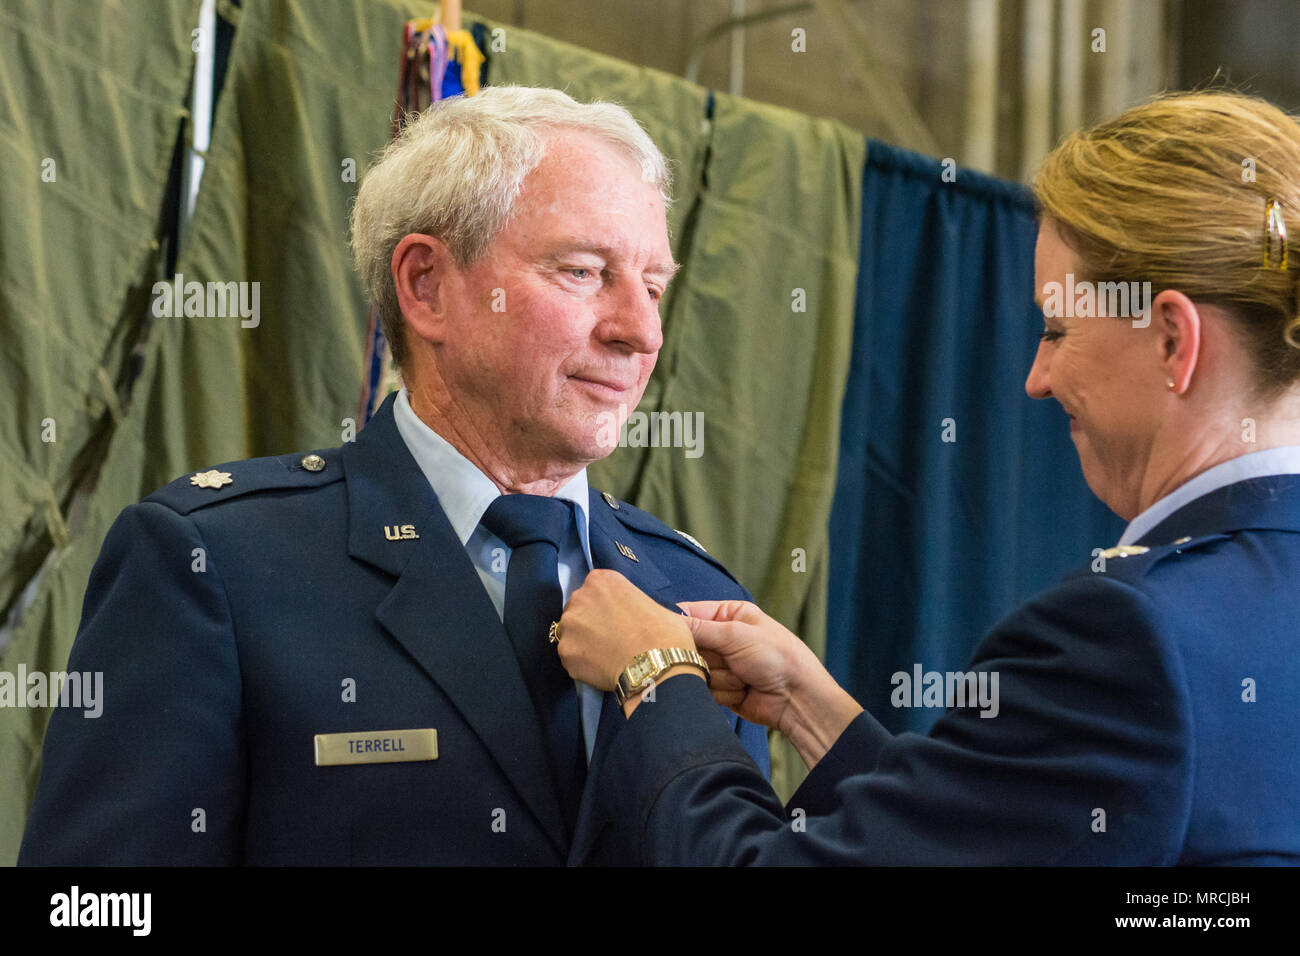 Us air force lt col bryony terrell right pins a vietnam us air force lt col bryony terrell right pins a vietnam veteran lapel pin on her father retired lt col royce terrell to honor his service in the publicscrutiny Choice Image